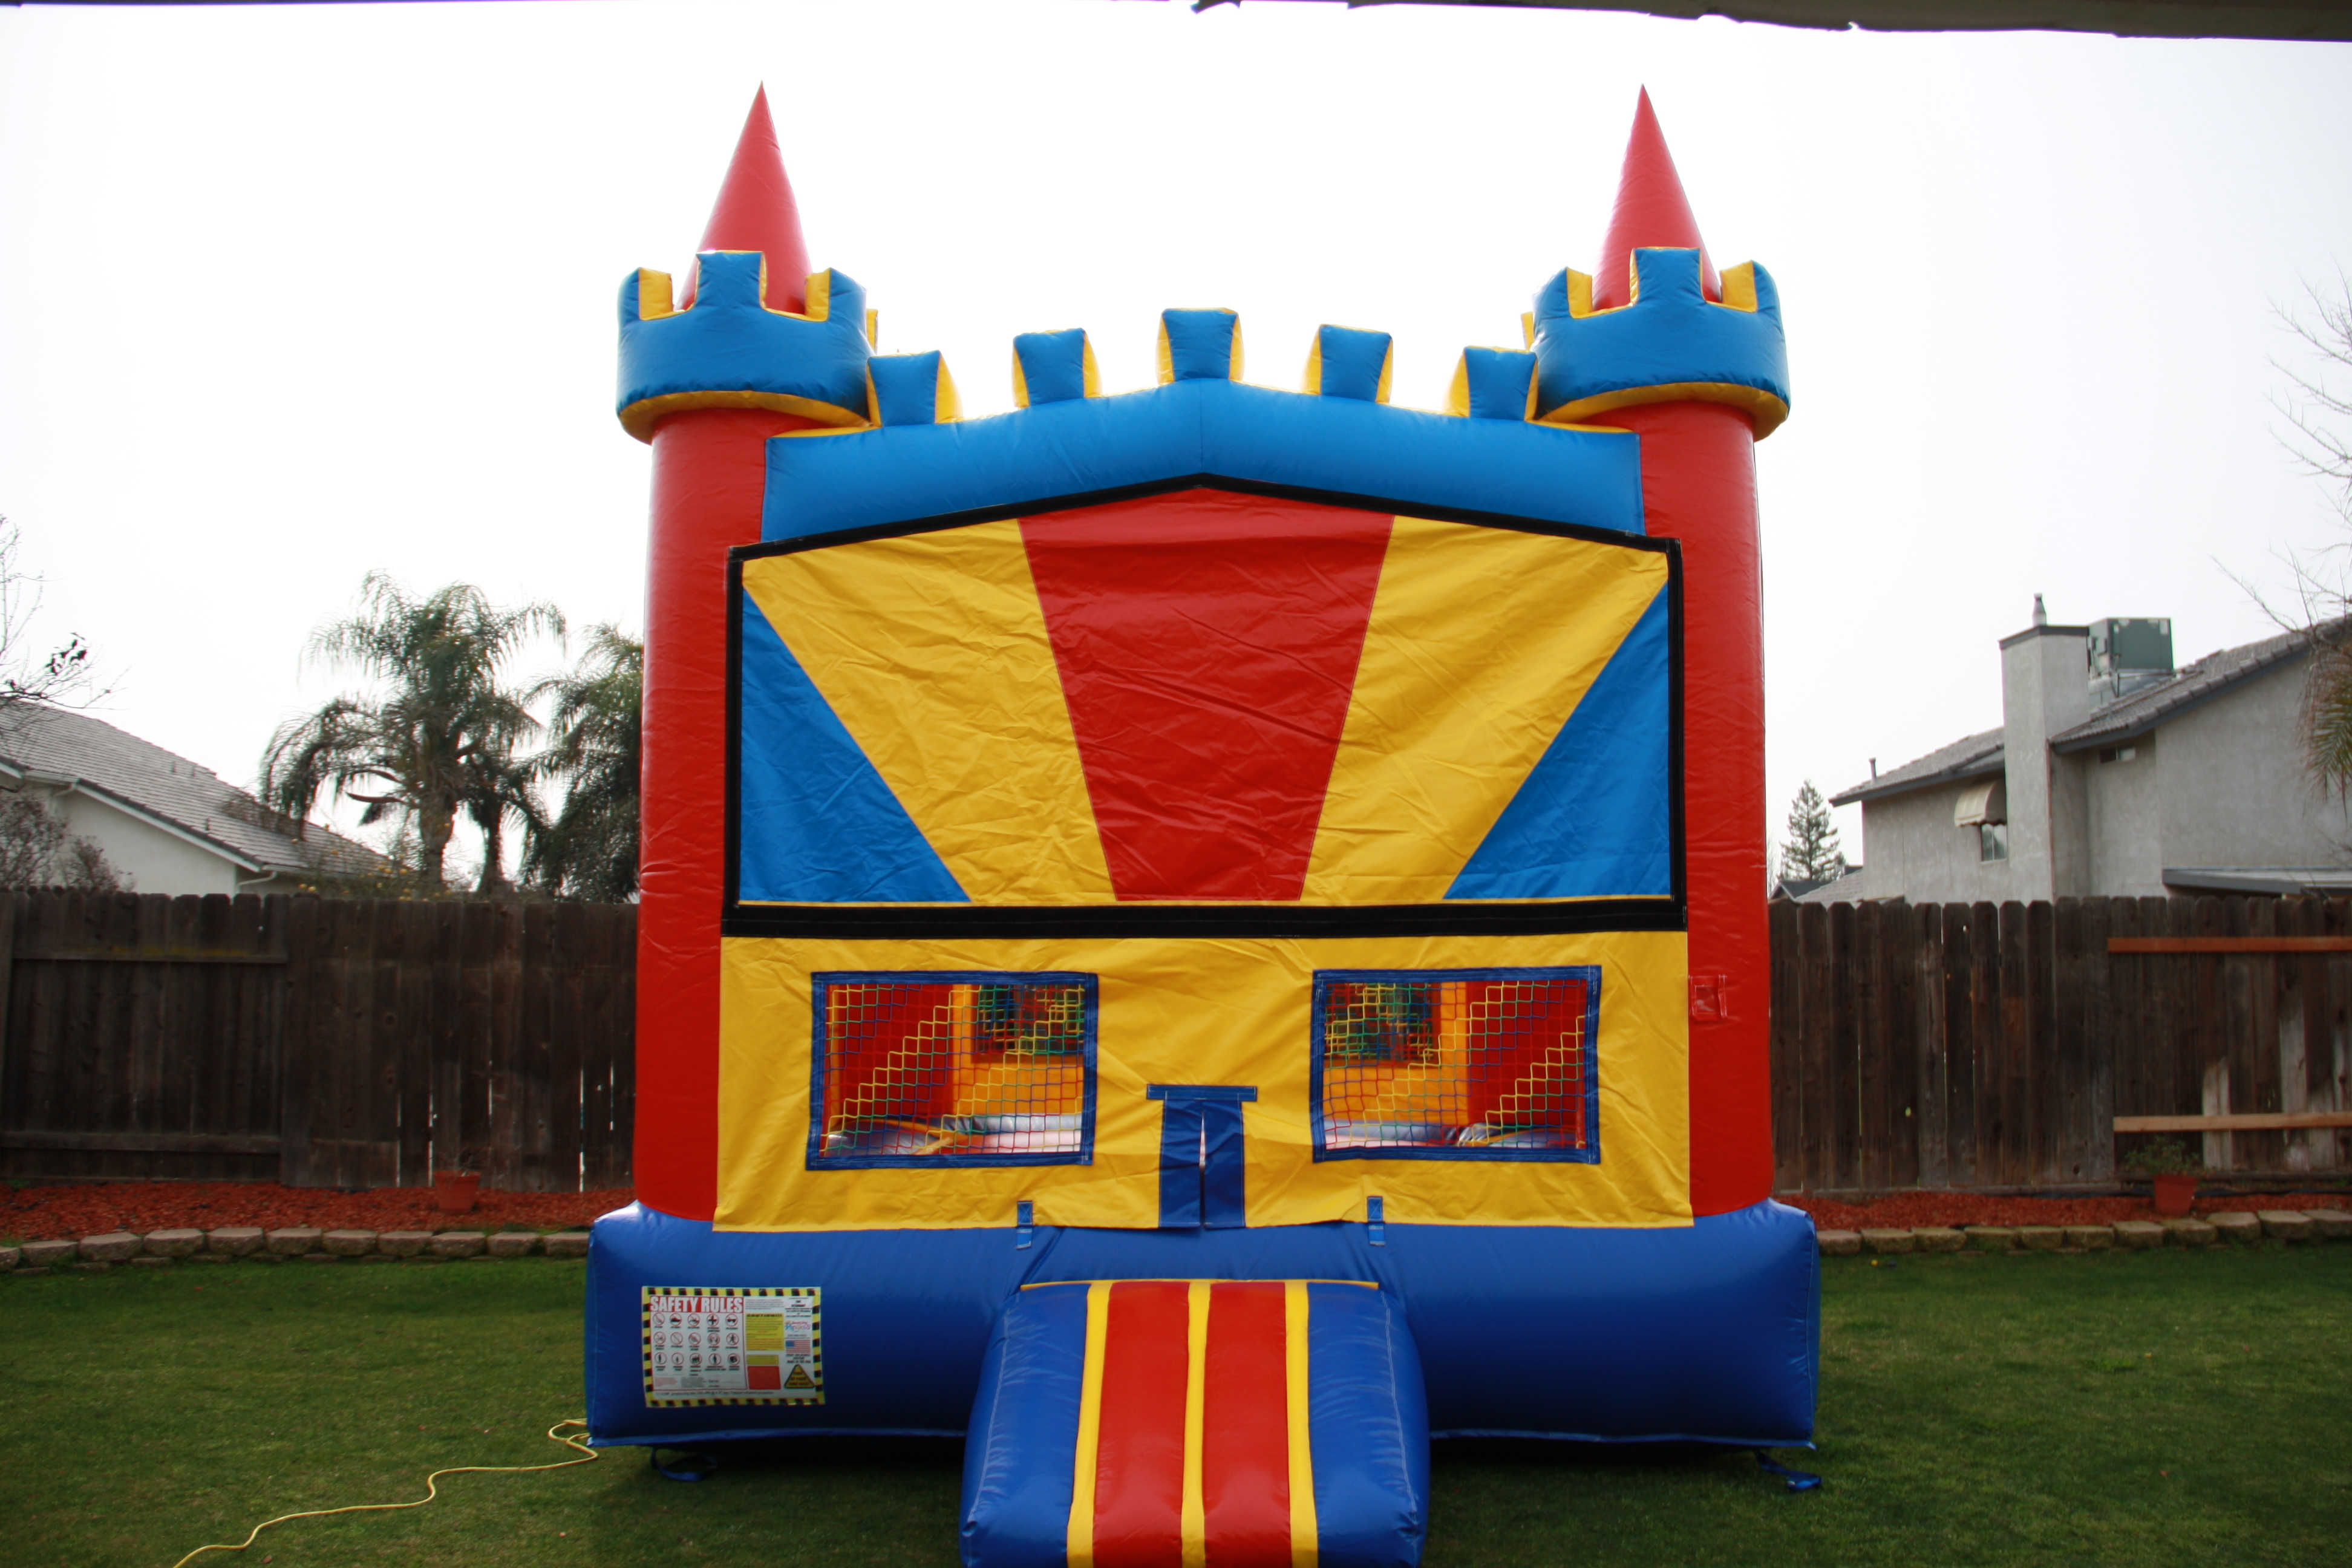 13 x 13 fun house castle with basketball hoop on the inside, over